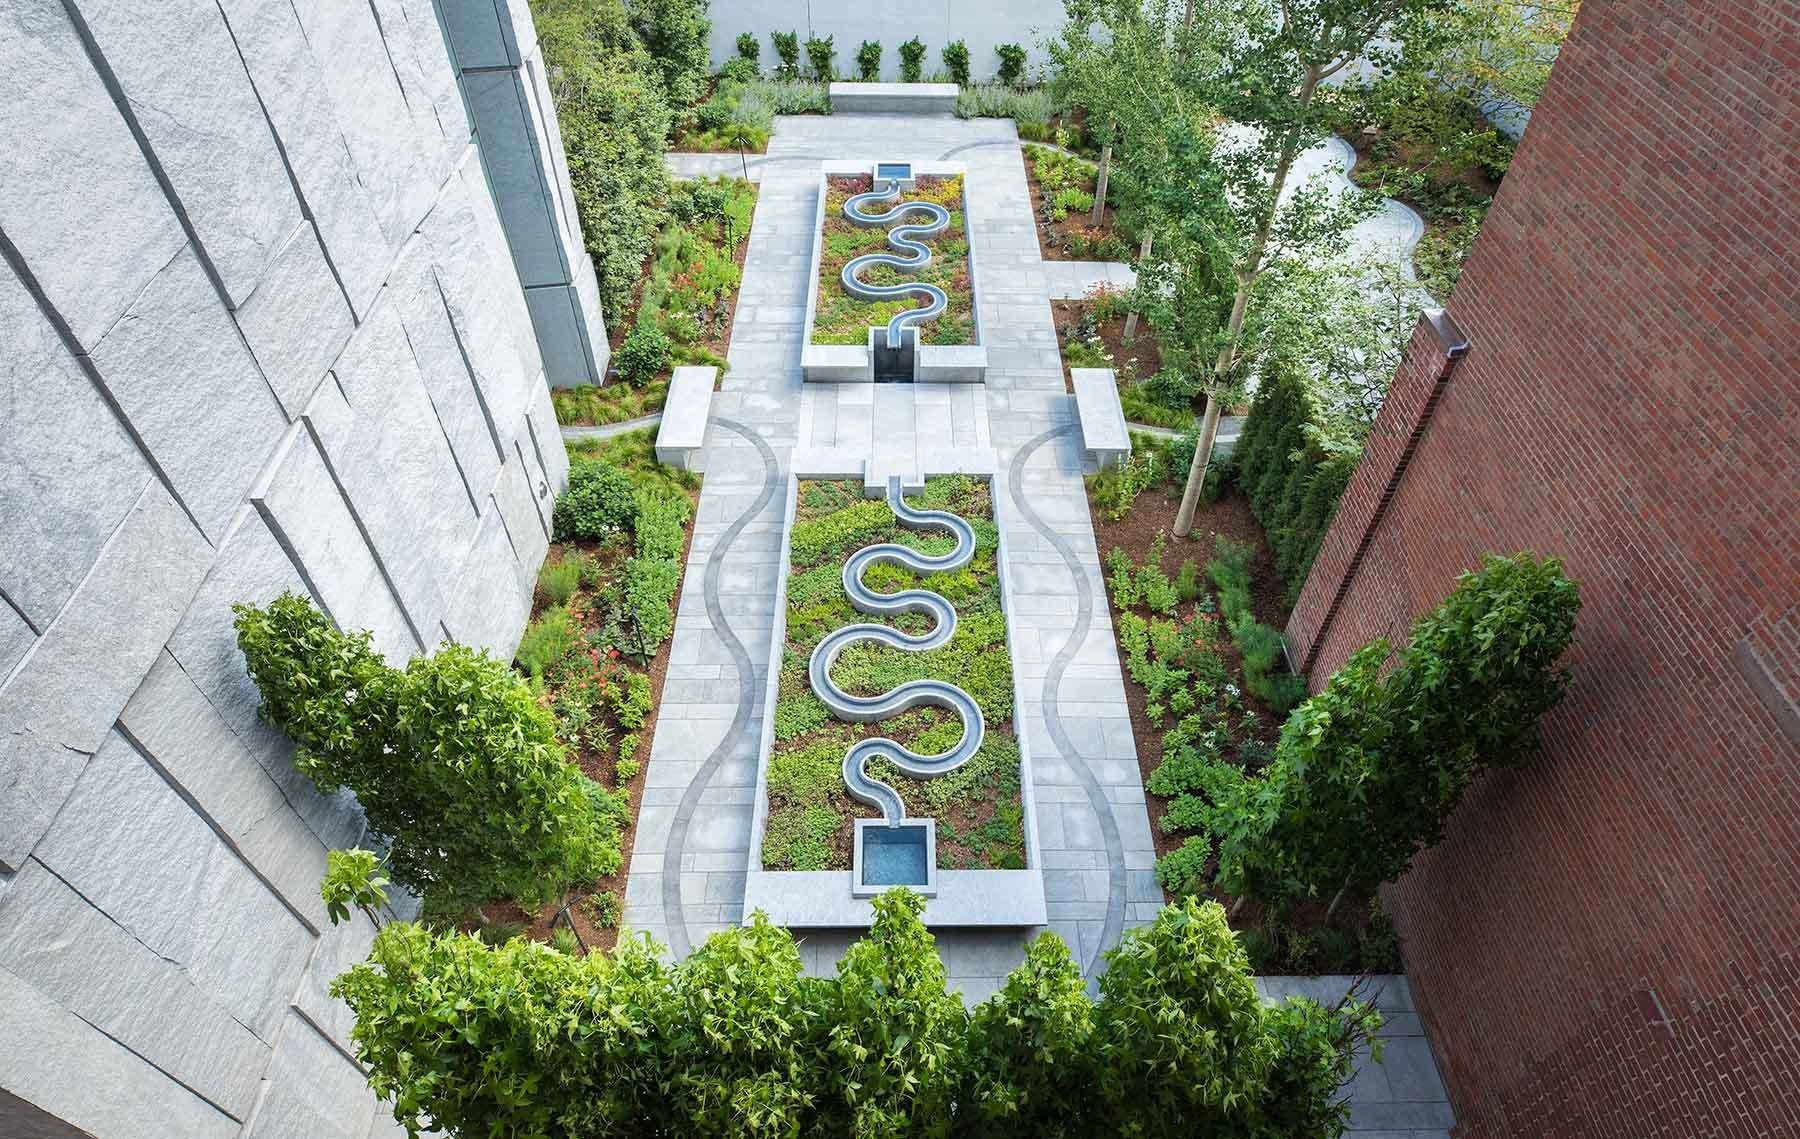 A bird's eye view of the new garden